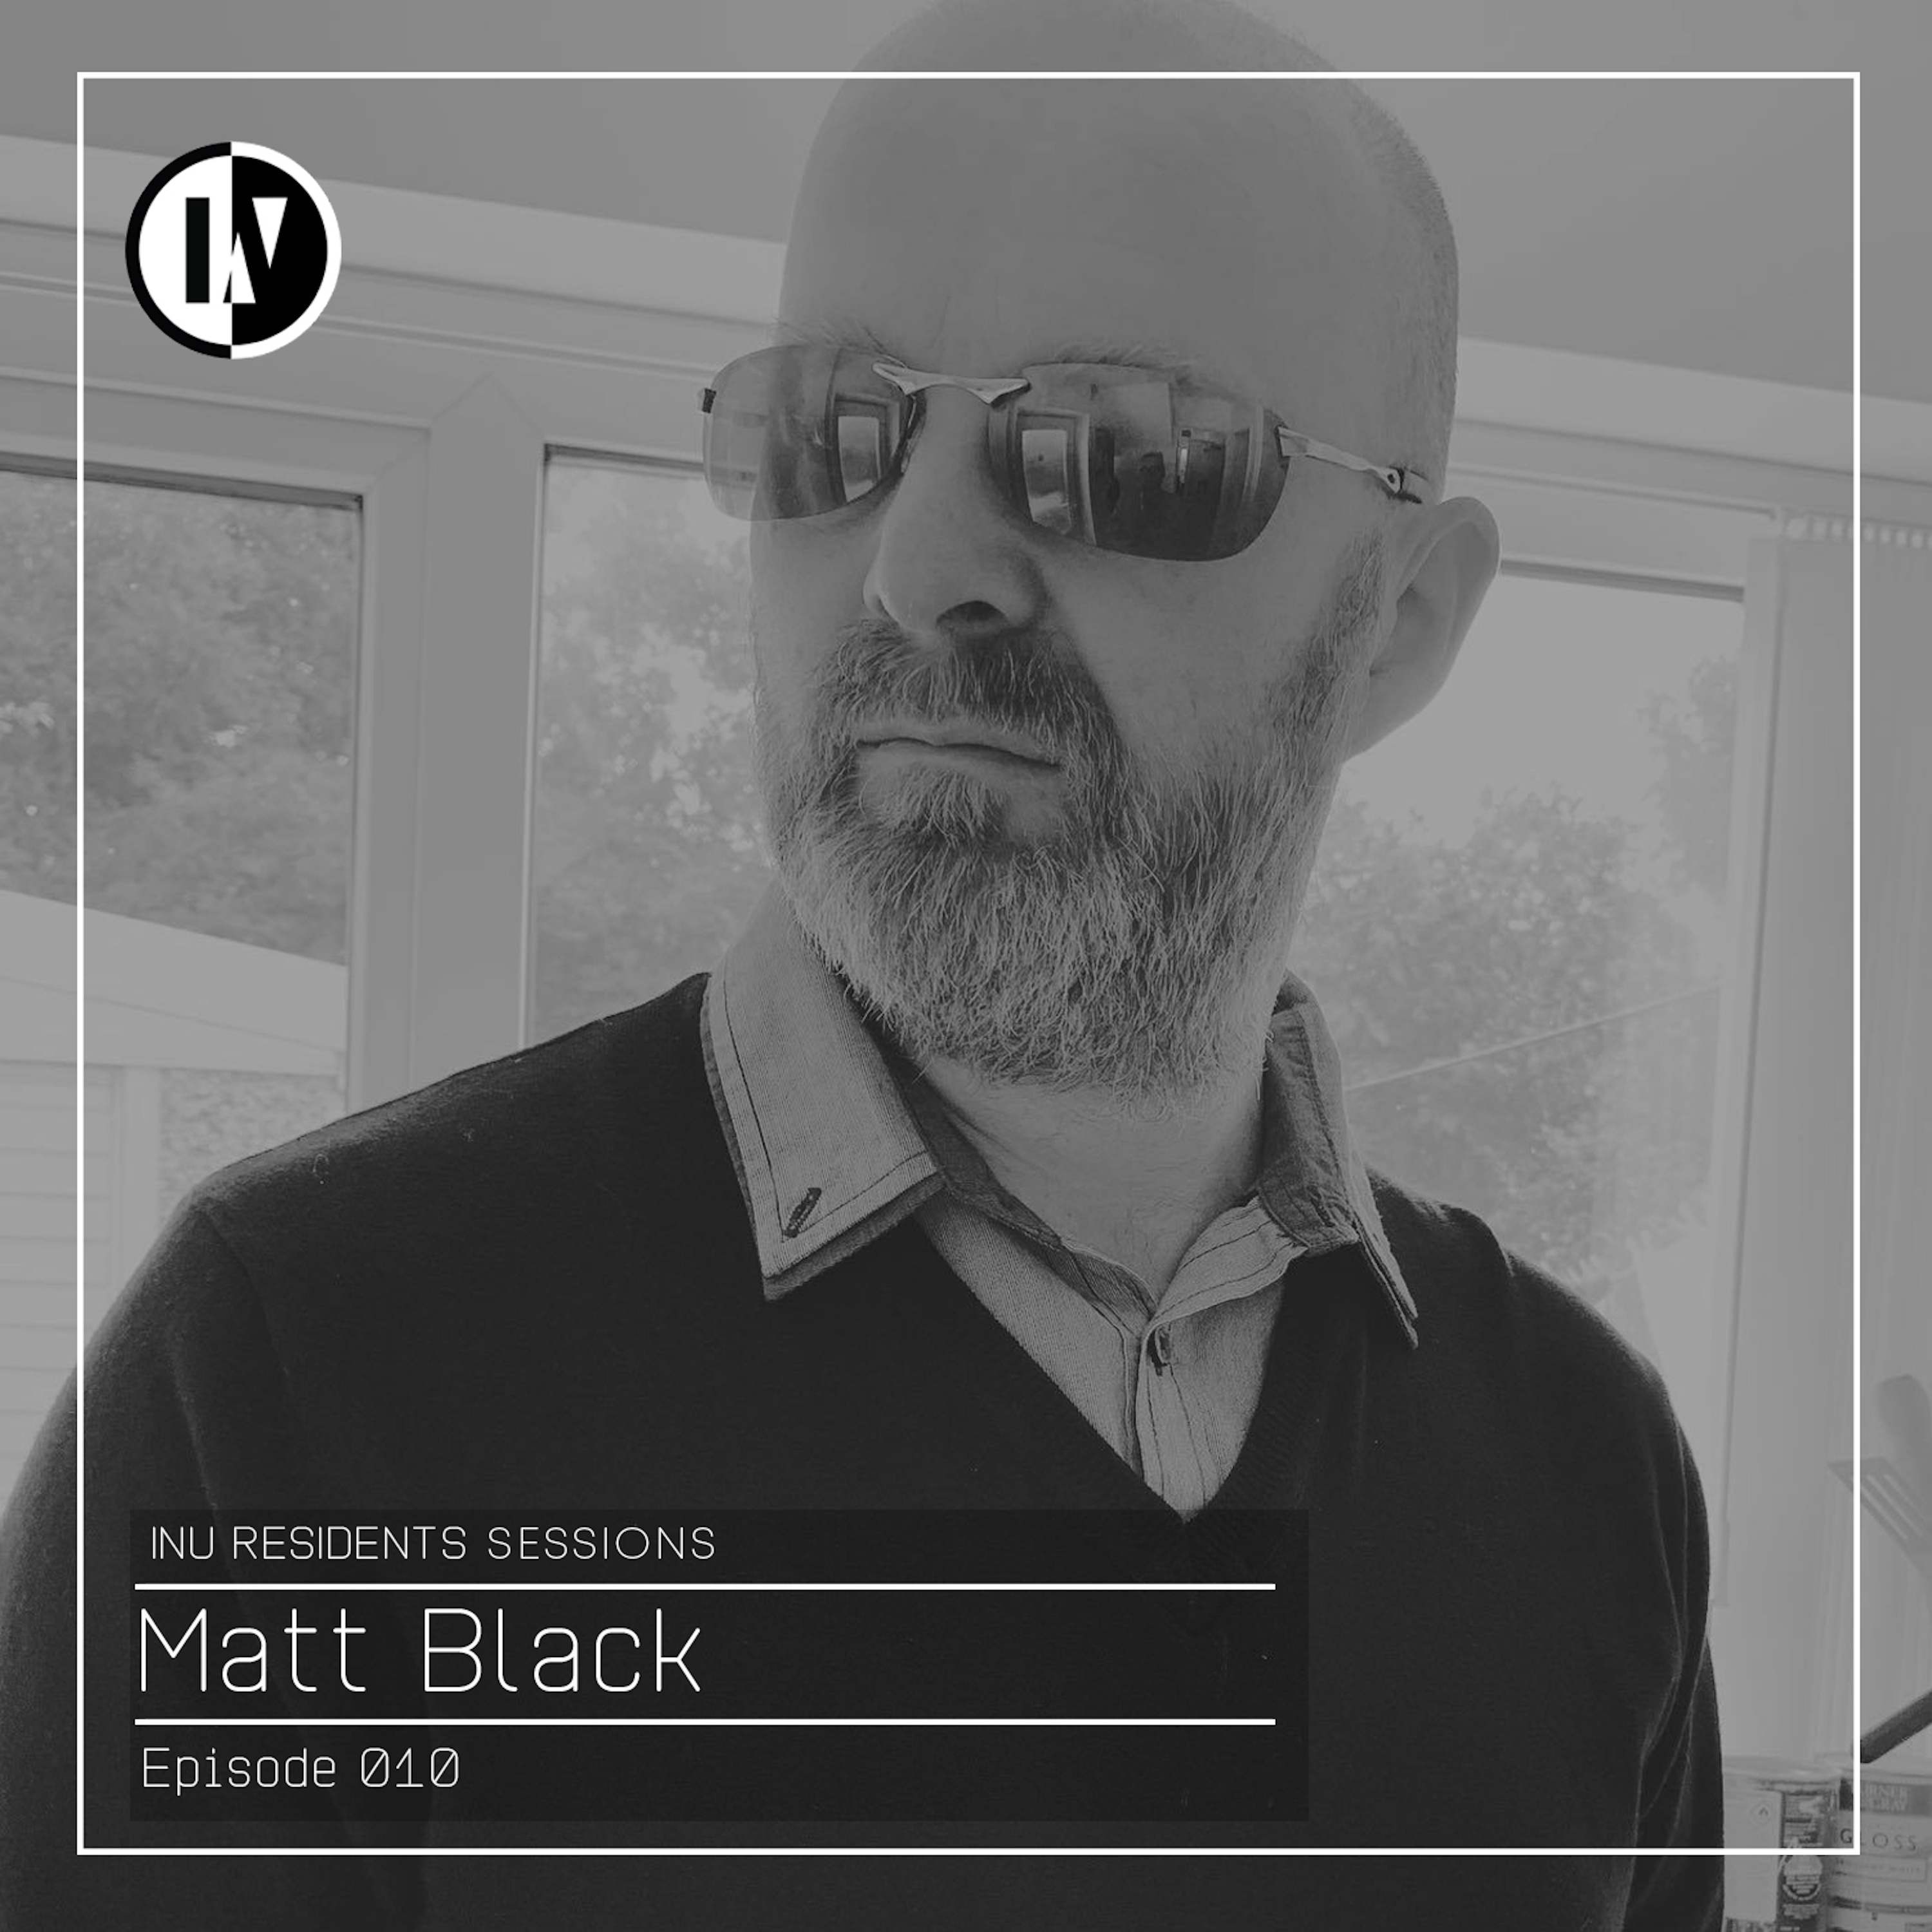 INU Residents Sessions 010 - Matt Black (from August 16th)